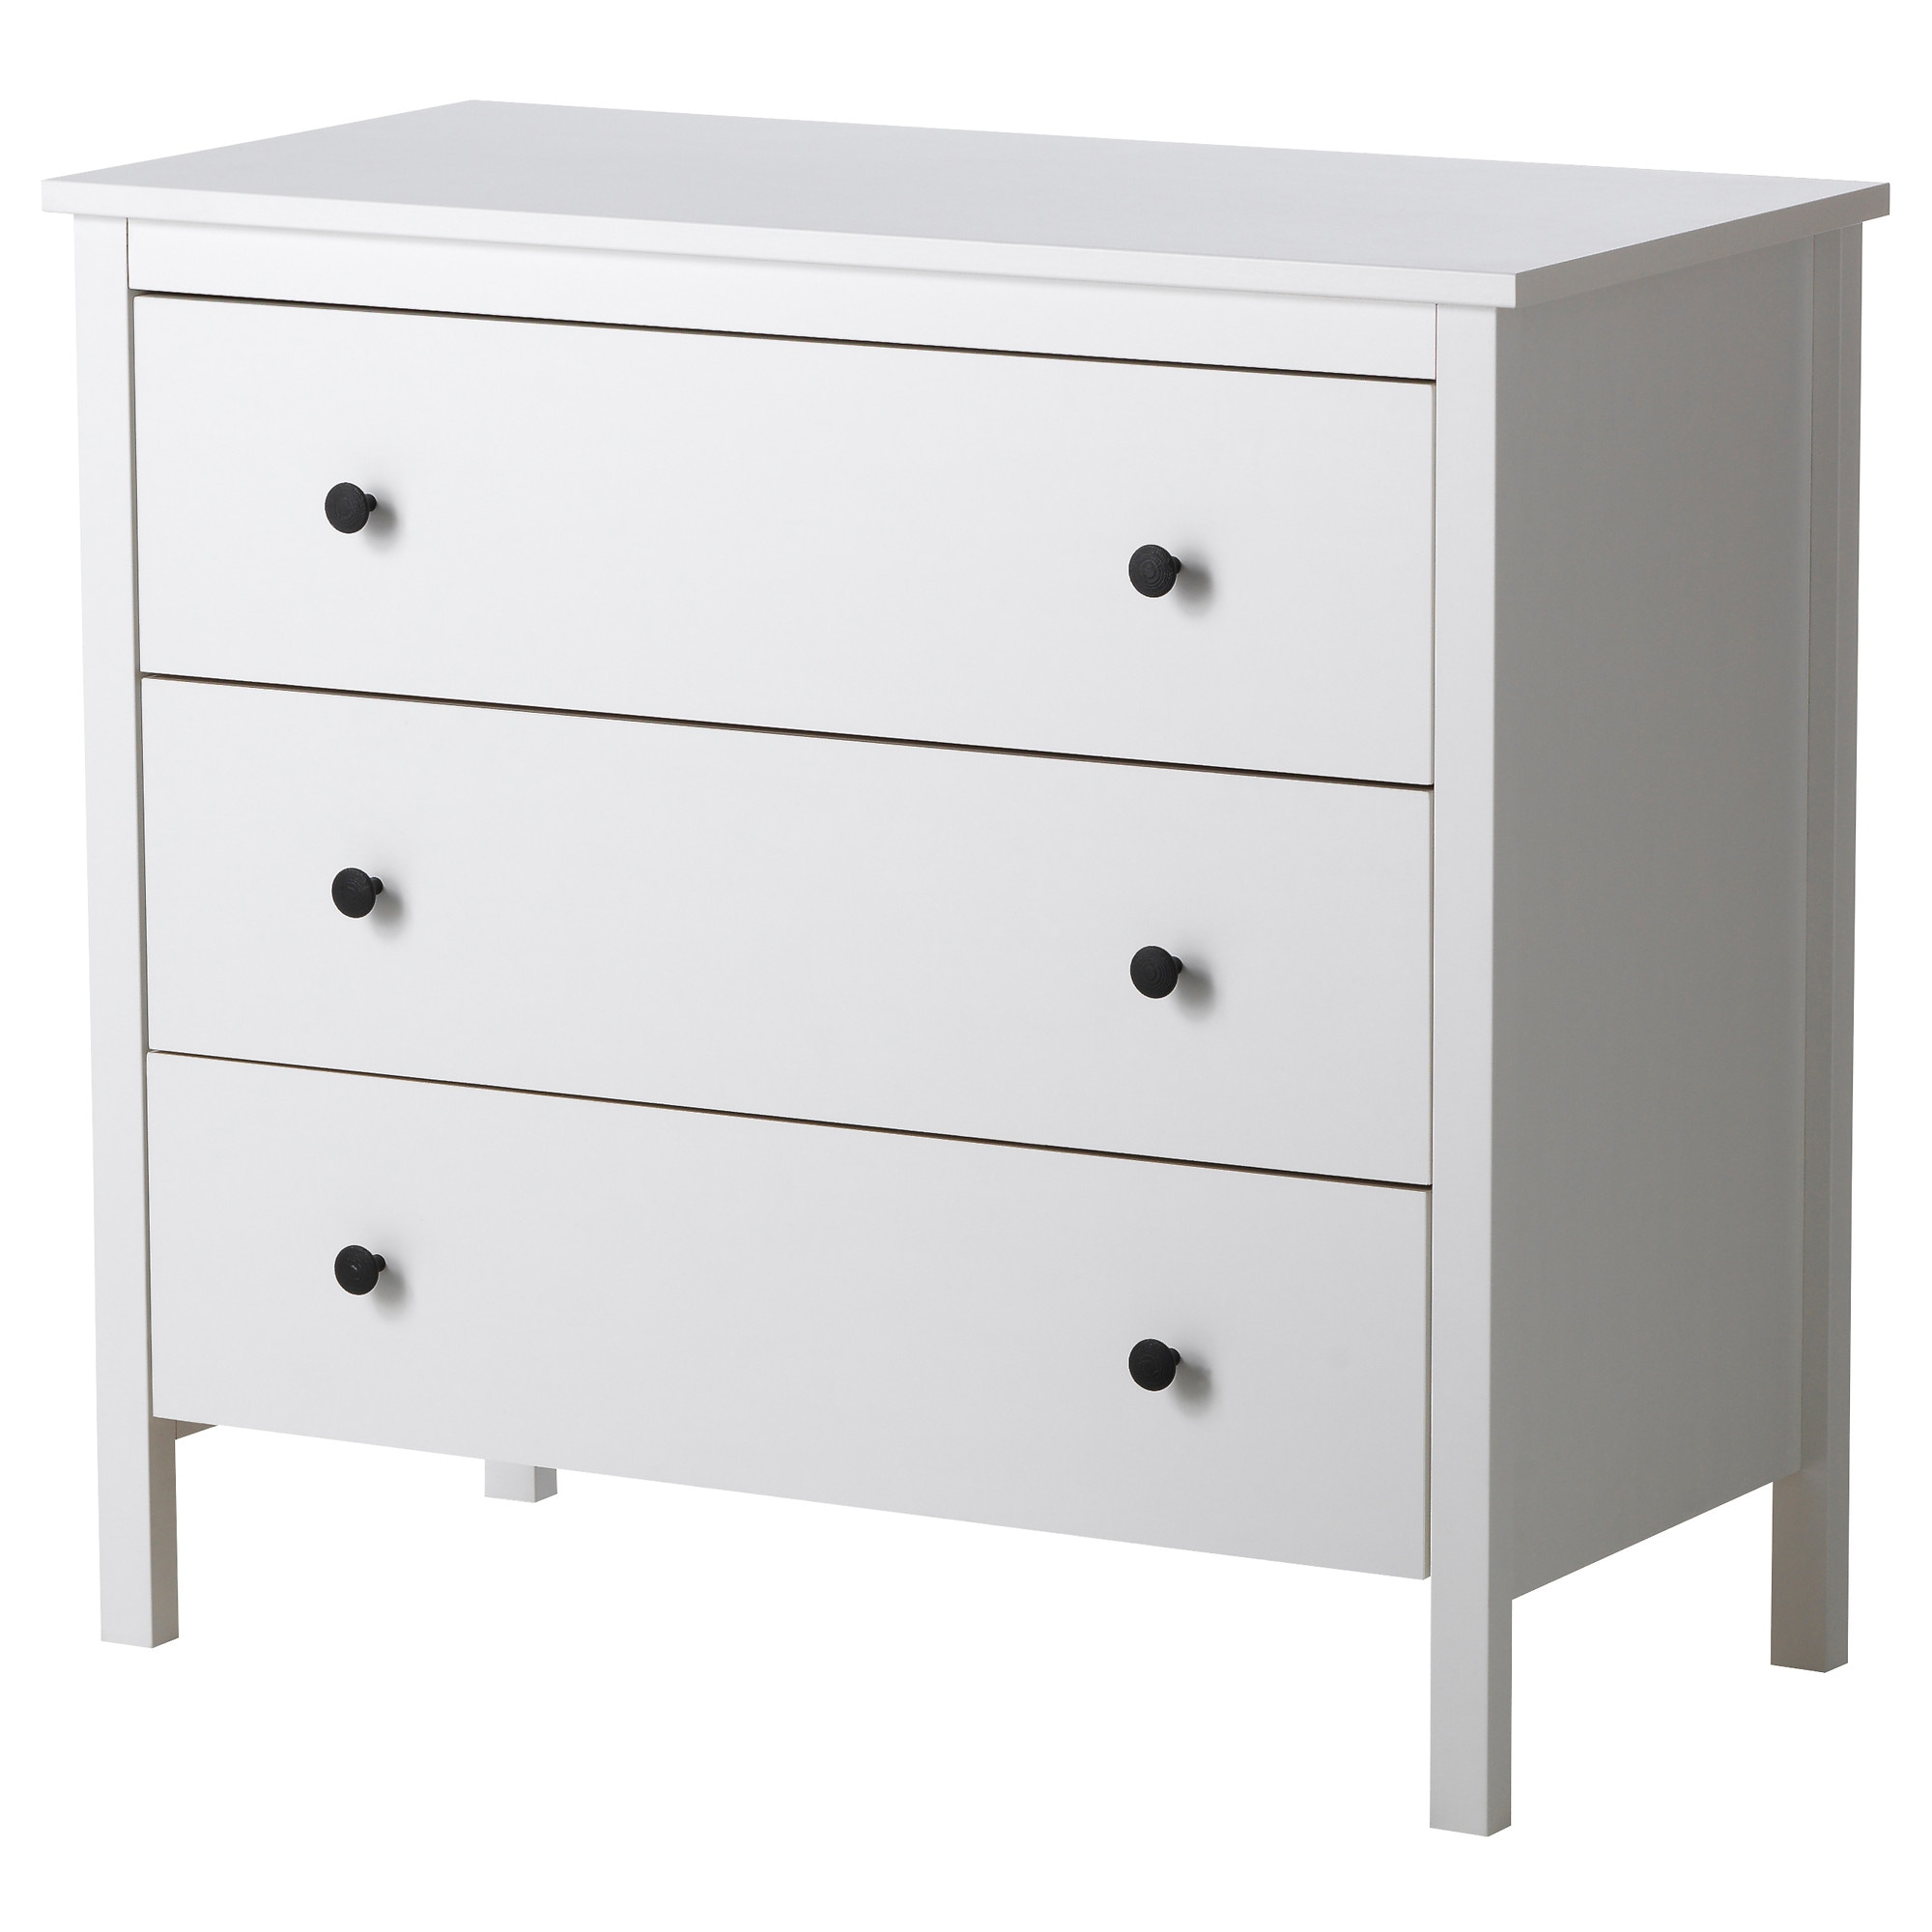 Aspelund ikea chest of drawers for Ikea waschtisch